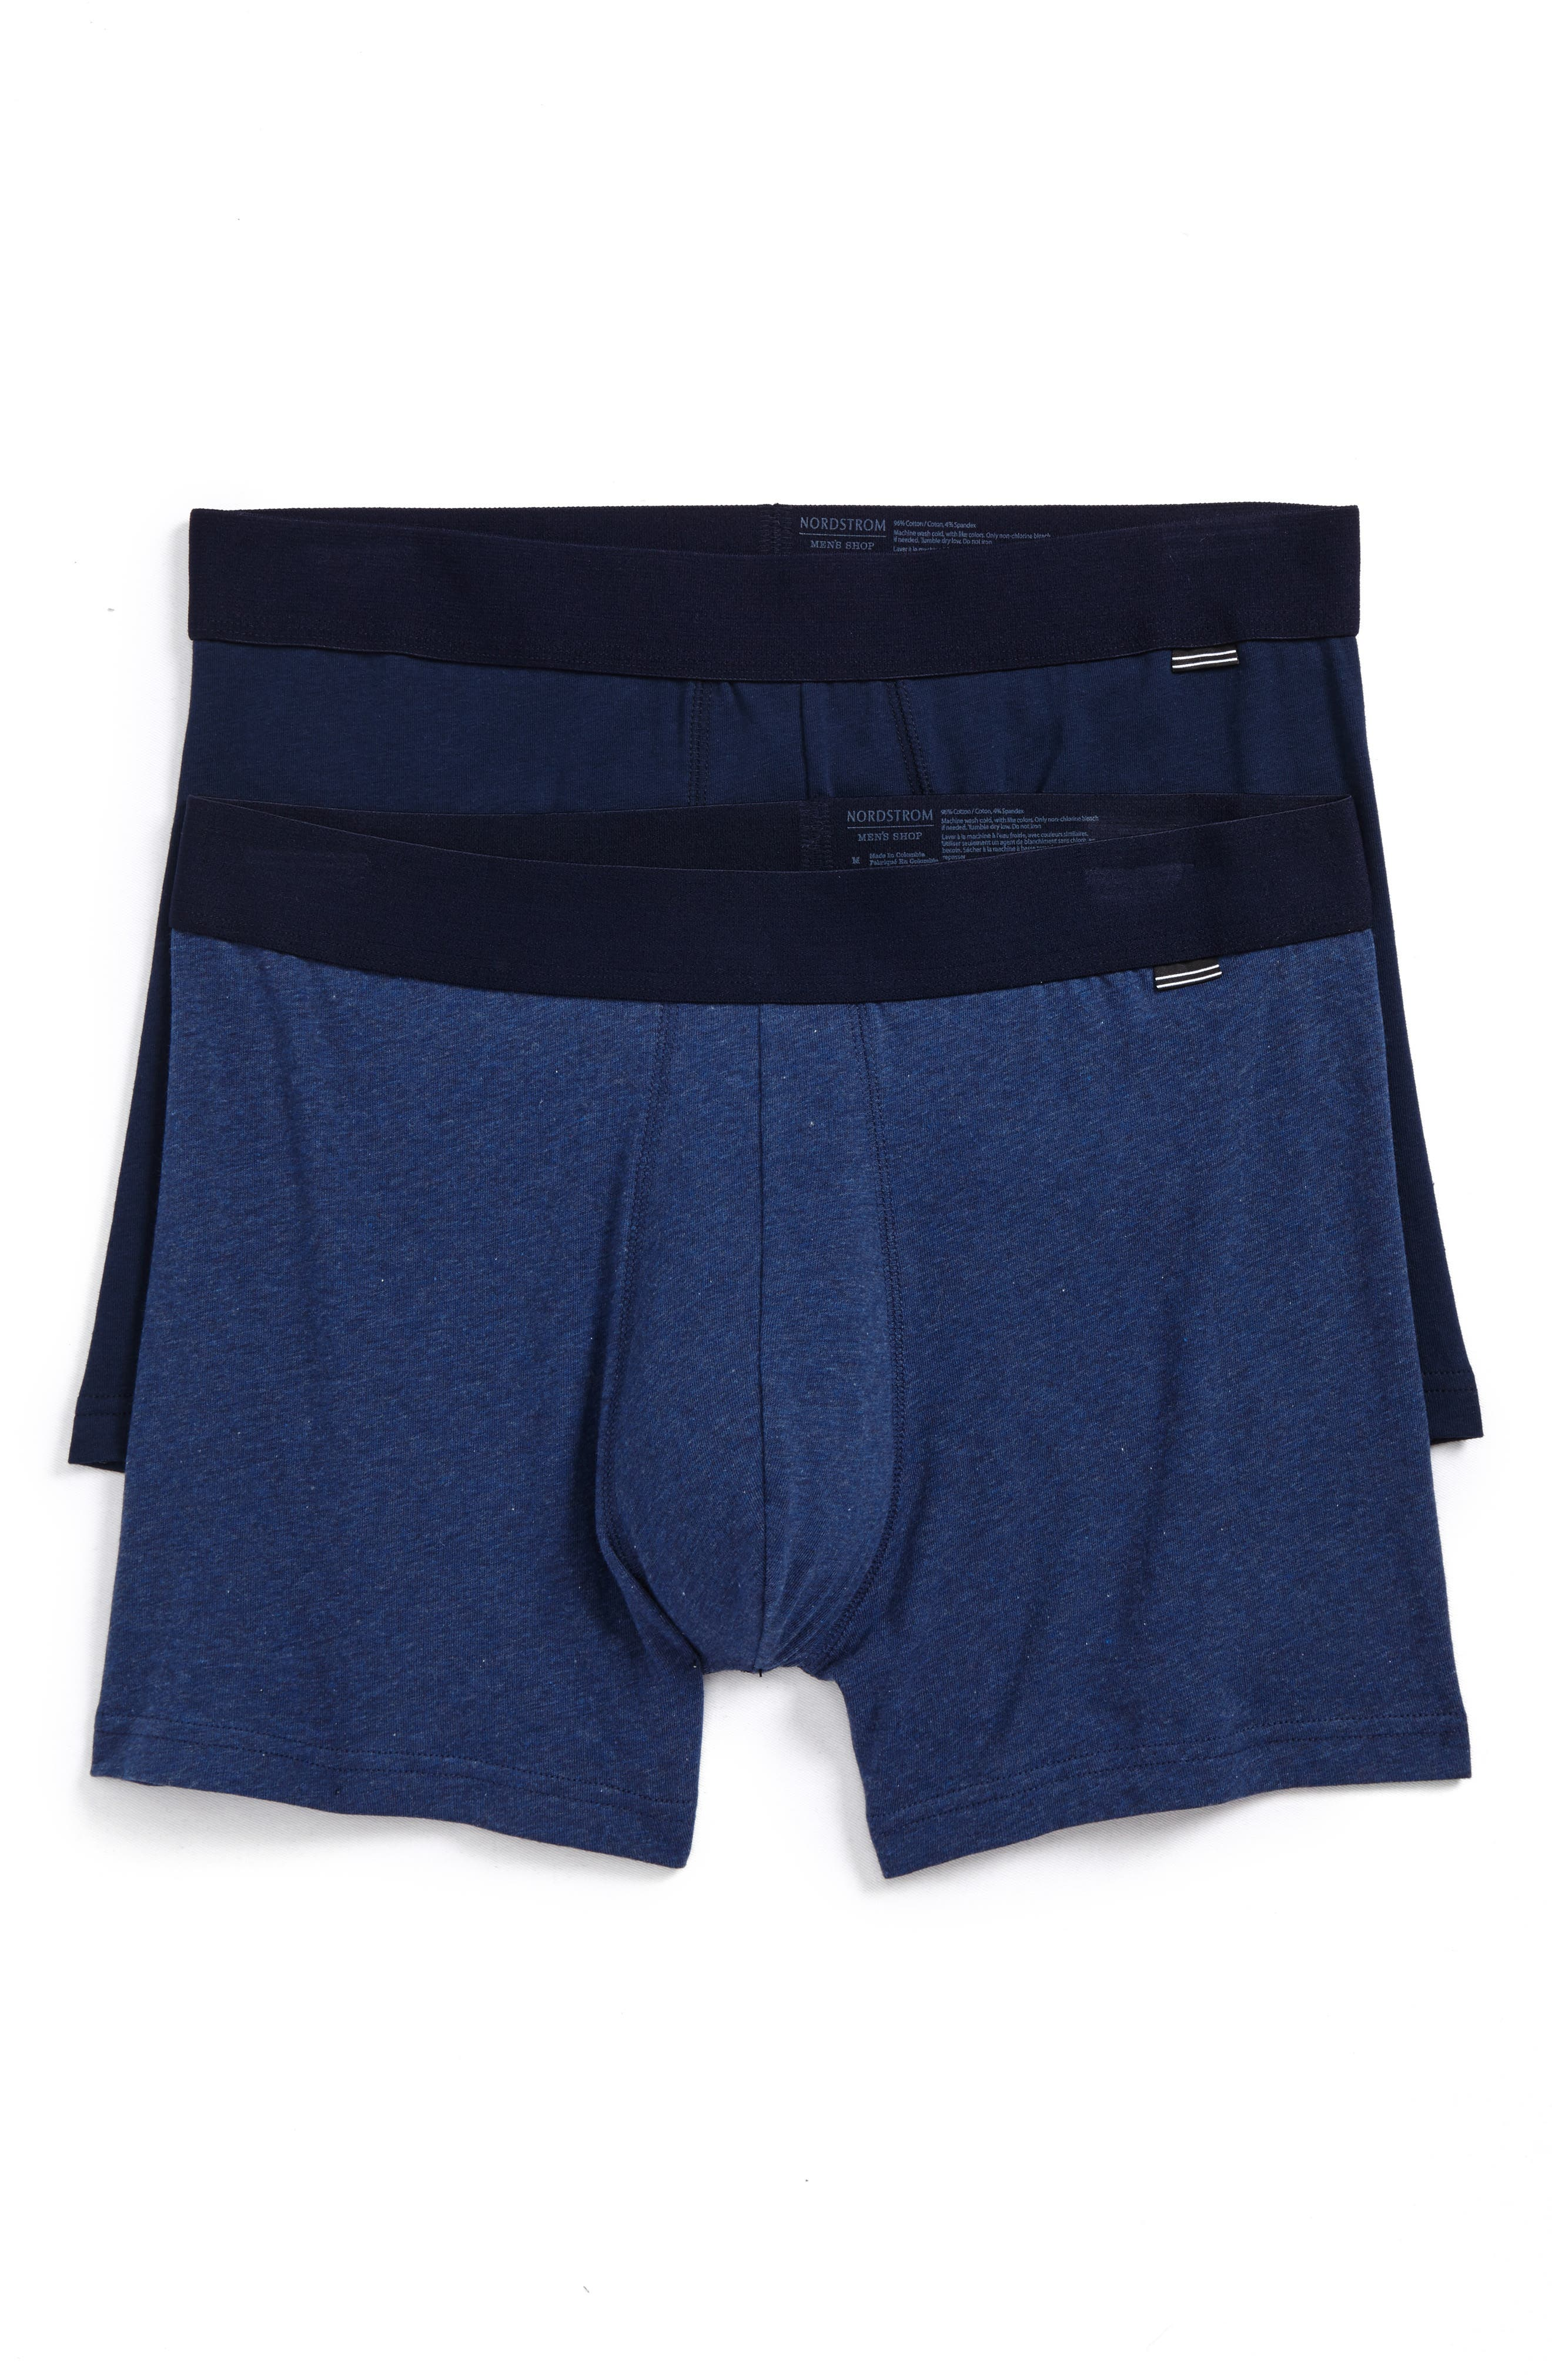 Nordstrom Men's Shop 2-Pack Boxer Briefs